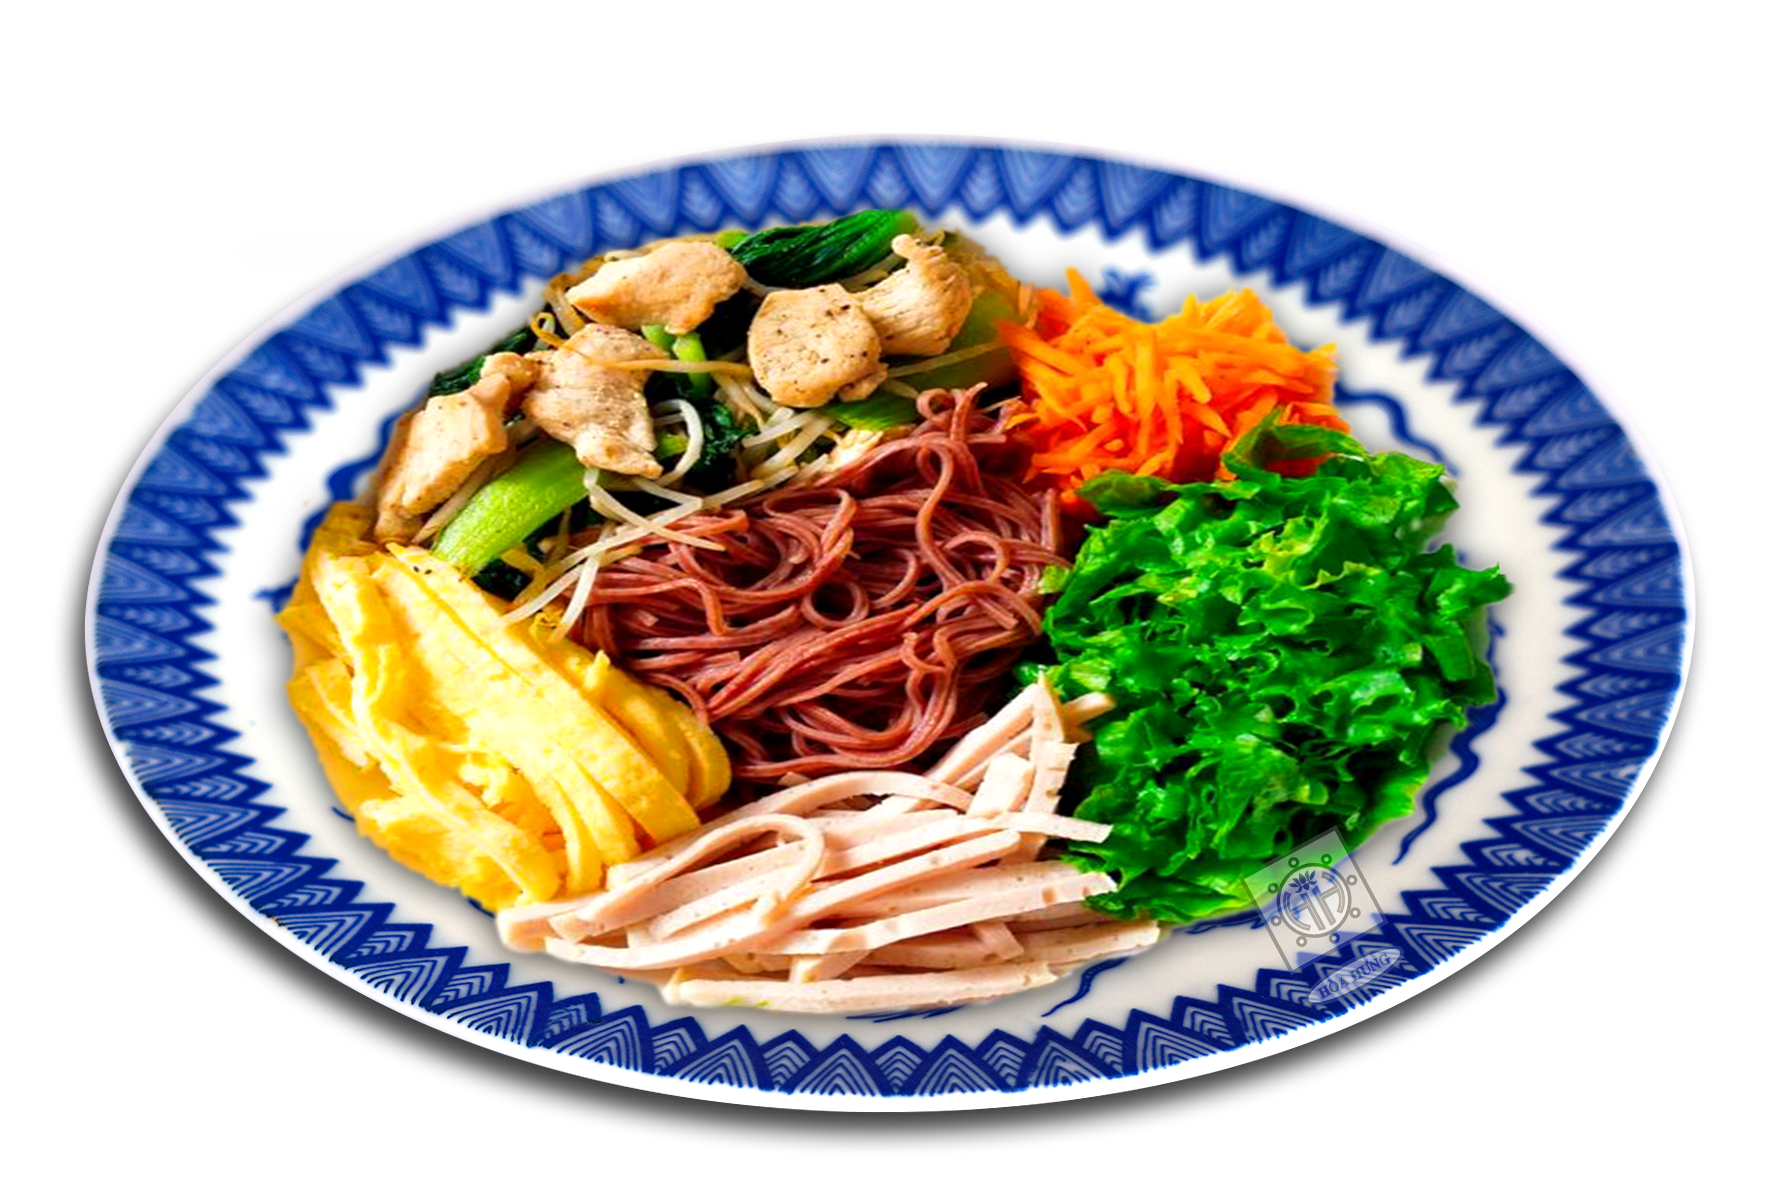 MIXED BROWN RICE NOODLES